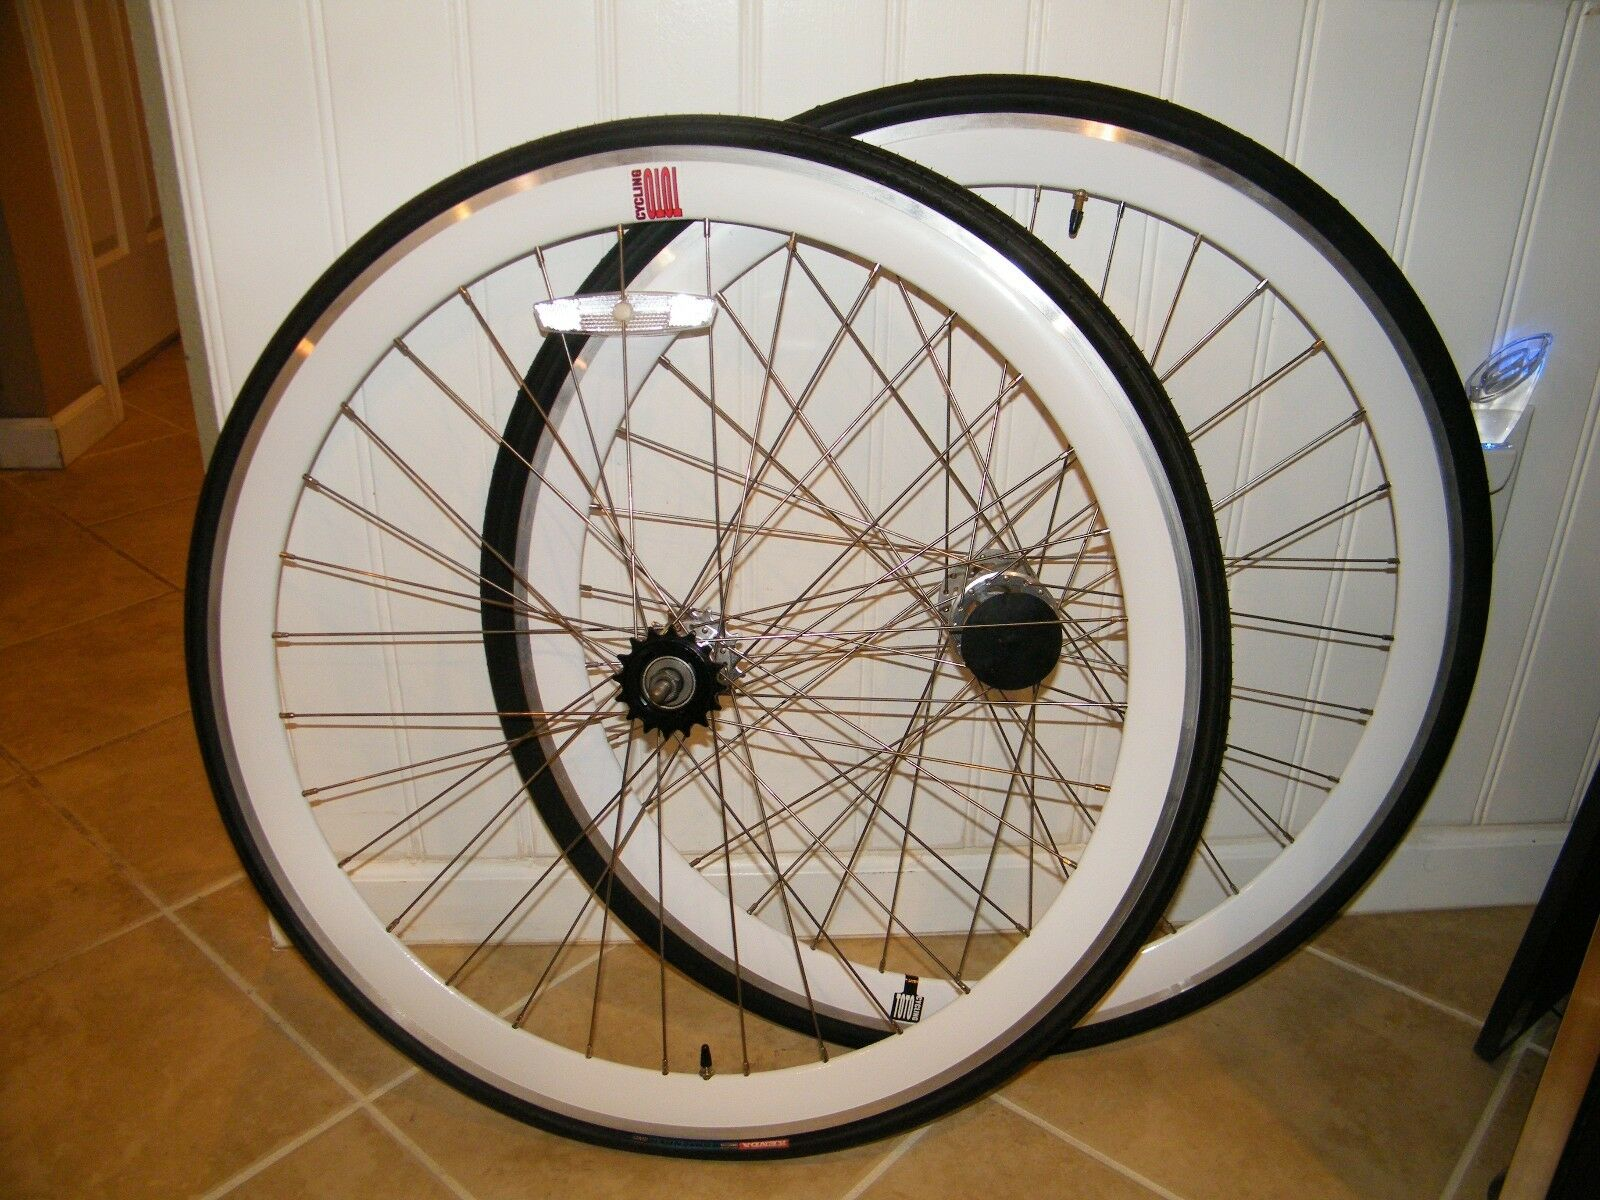 (2) 26   TOTO CYCLING WHEEL, WHITE MSW, FRONT & REAR, QUANDO HUB, KENDA TIRE  general high quality